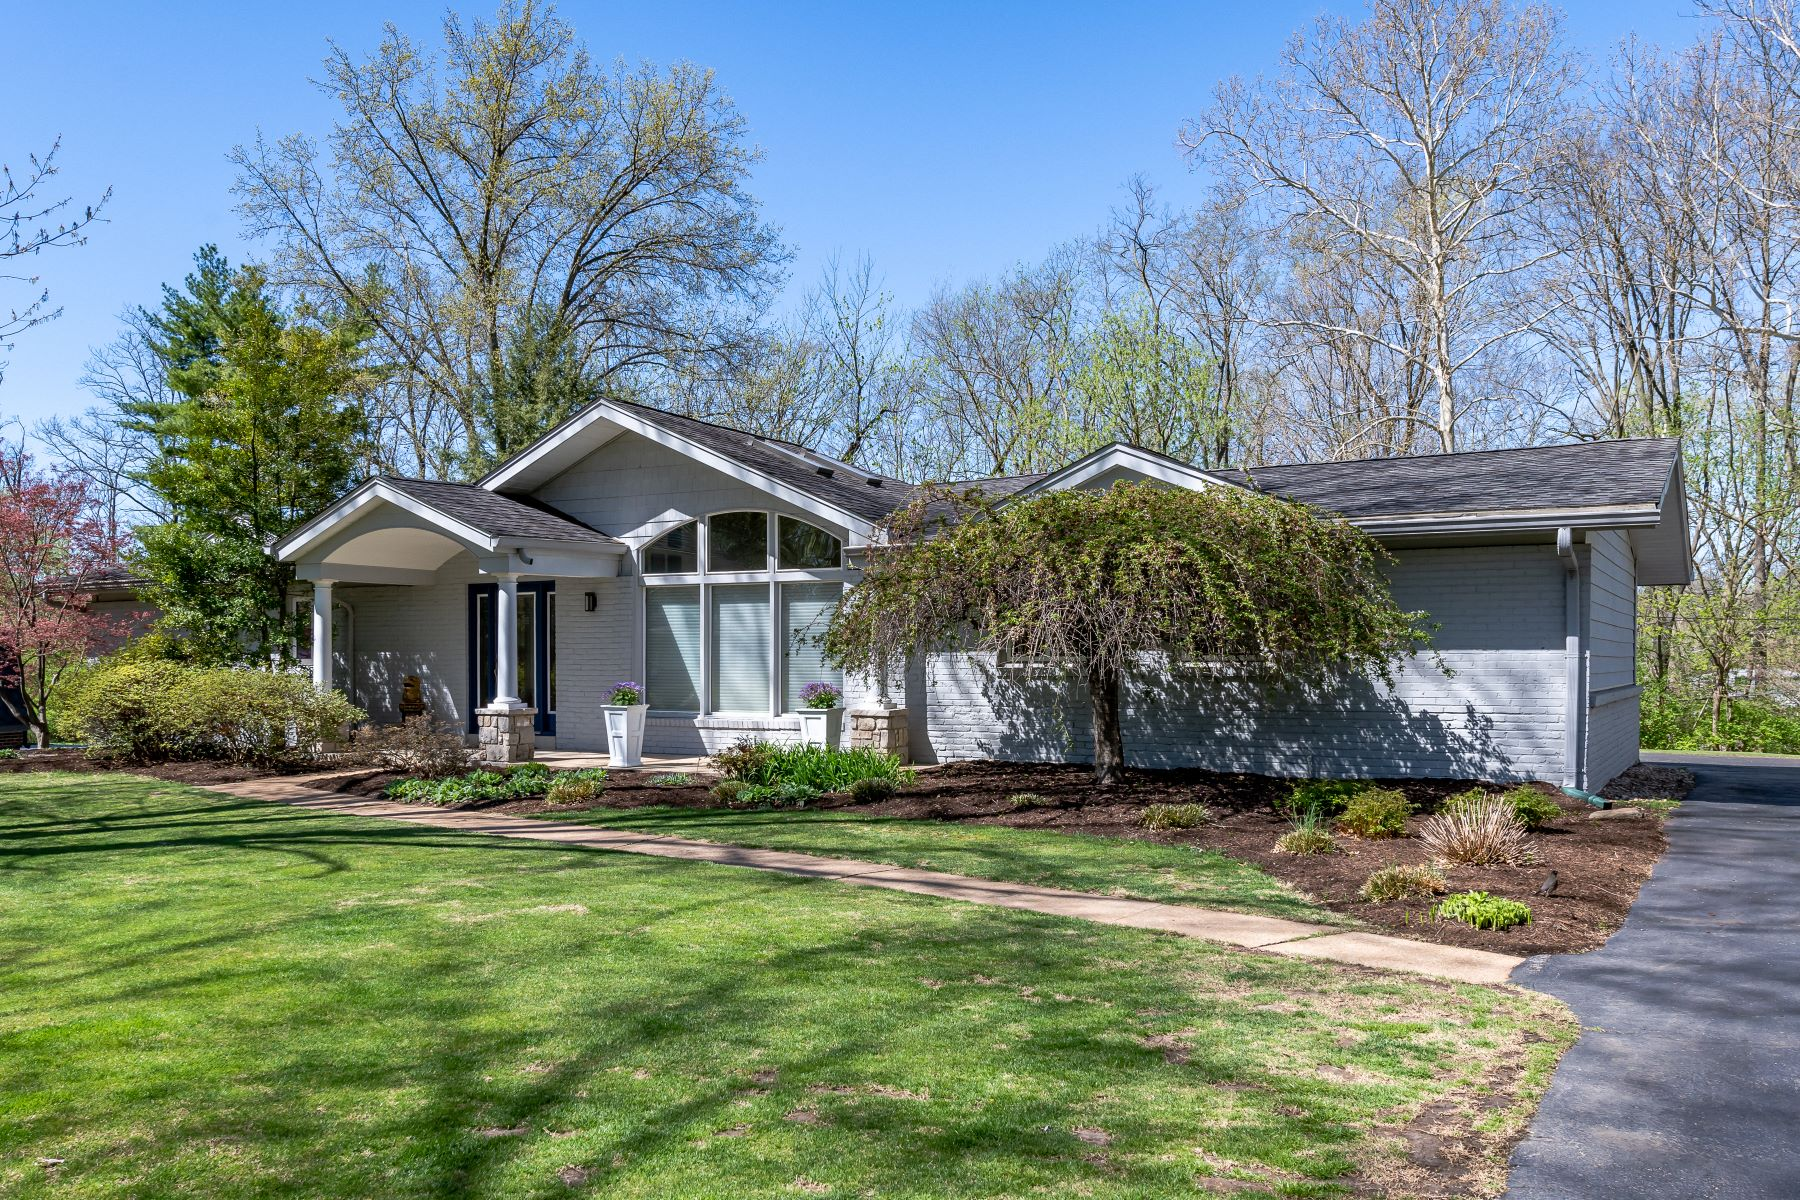 Single Family Home for Sale at 157 Seabrook Drive, Chesterfield, MO 63017 157 Seabrook Drive Chesterfield, Missouri 63017 United States